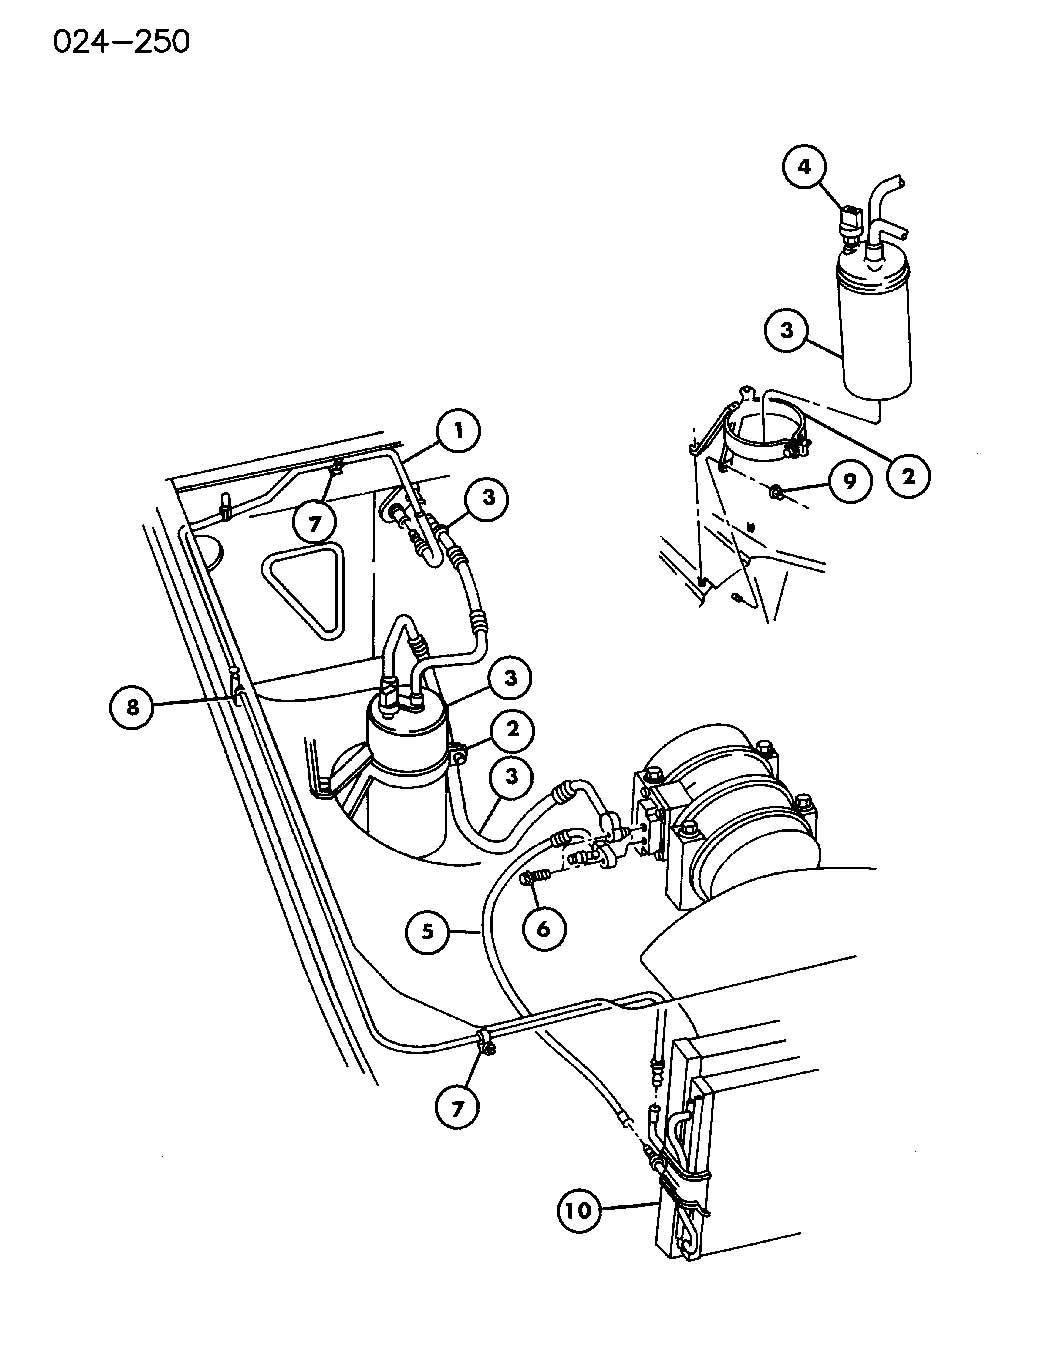 wj air conditioner wiring diagram air conditioning